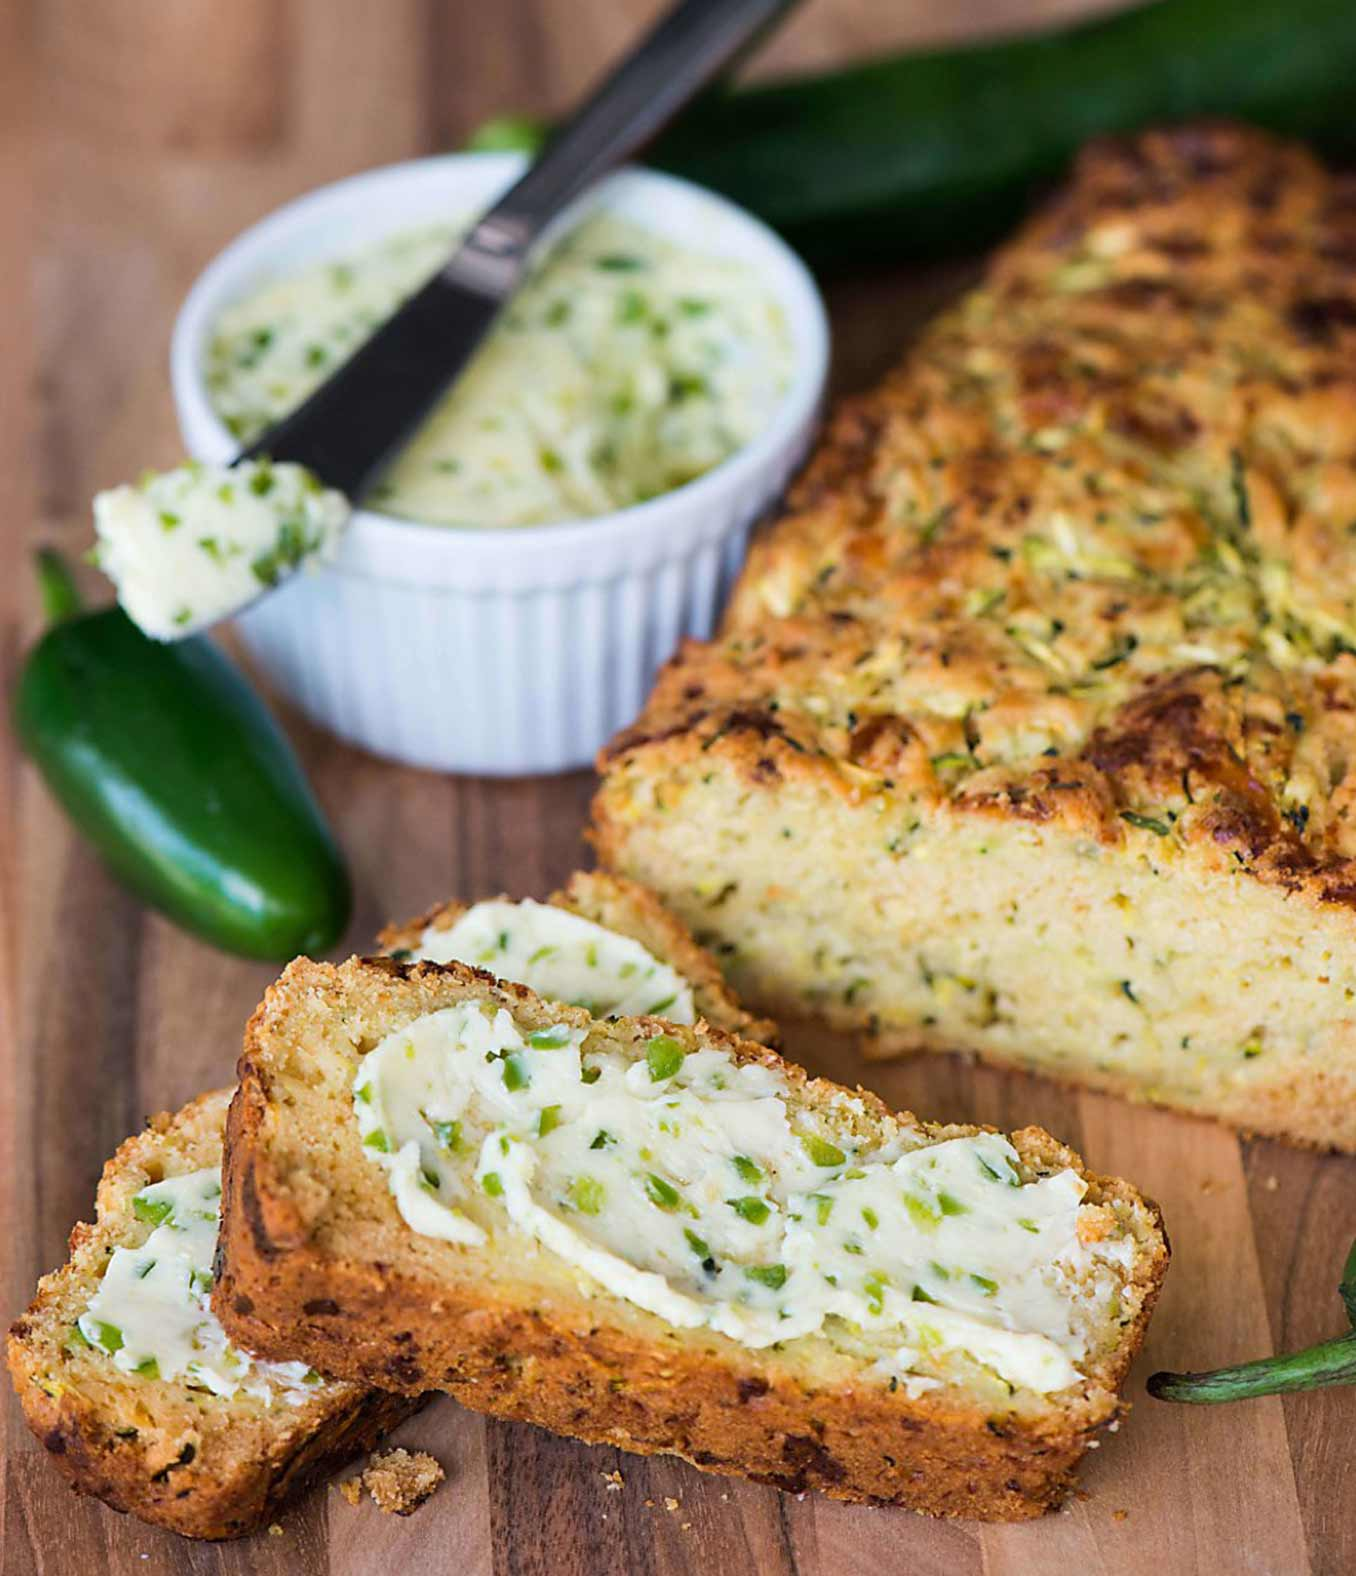 Cheddar Zucchini Bread with Jalapeño Honey Butter